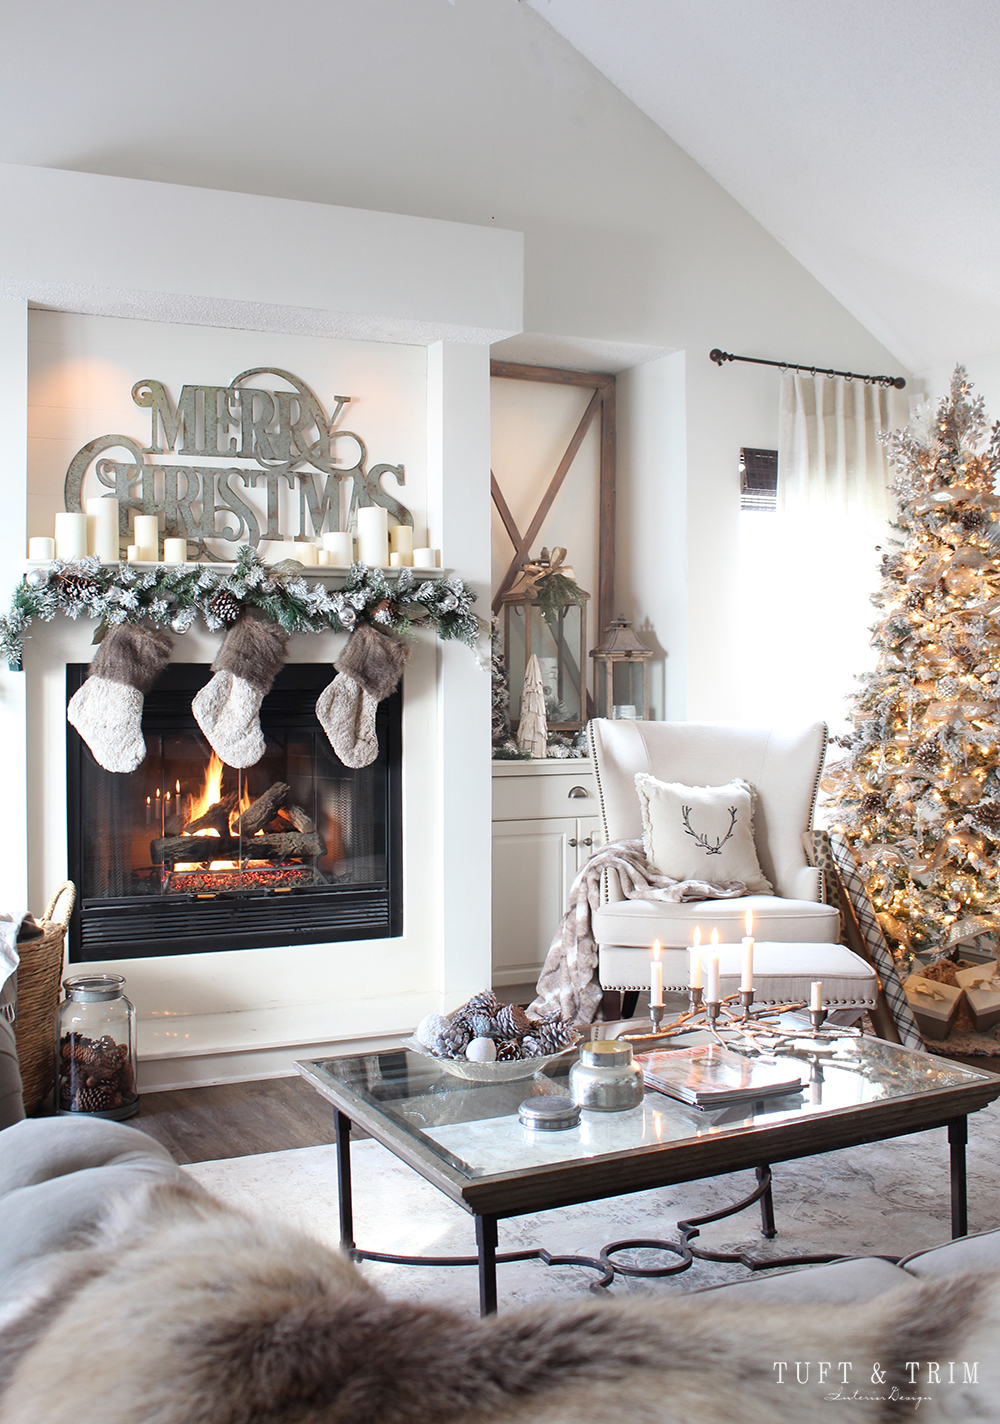 Rustic and Neutral Christmas Decor with Tuft and Trim Interior design at tuftandtrim.com